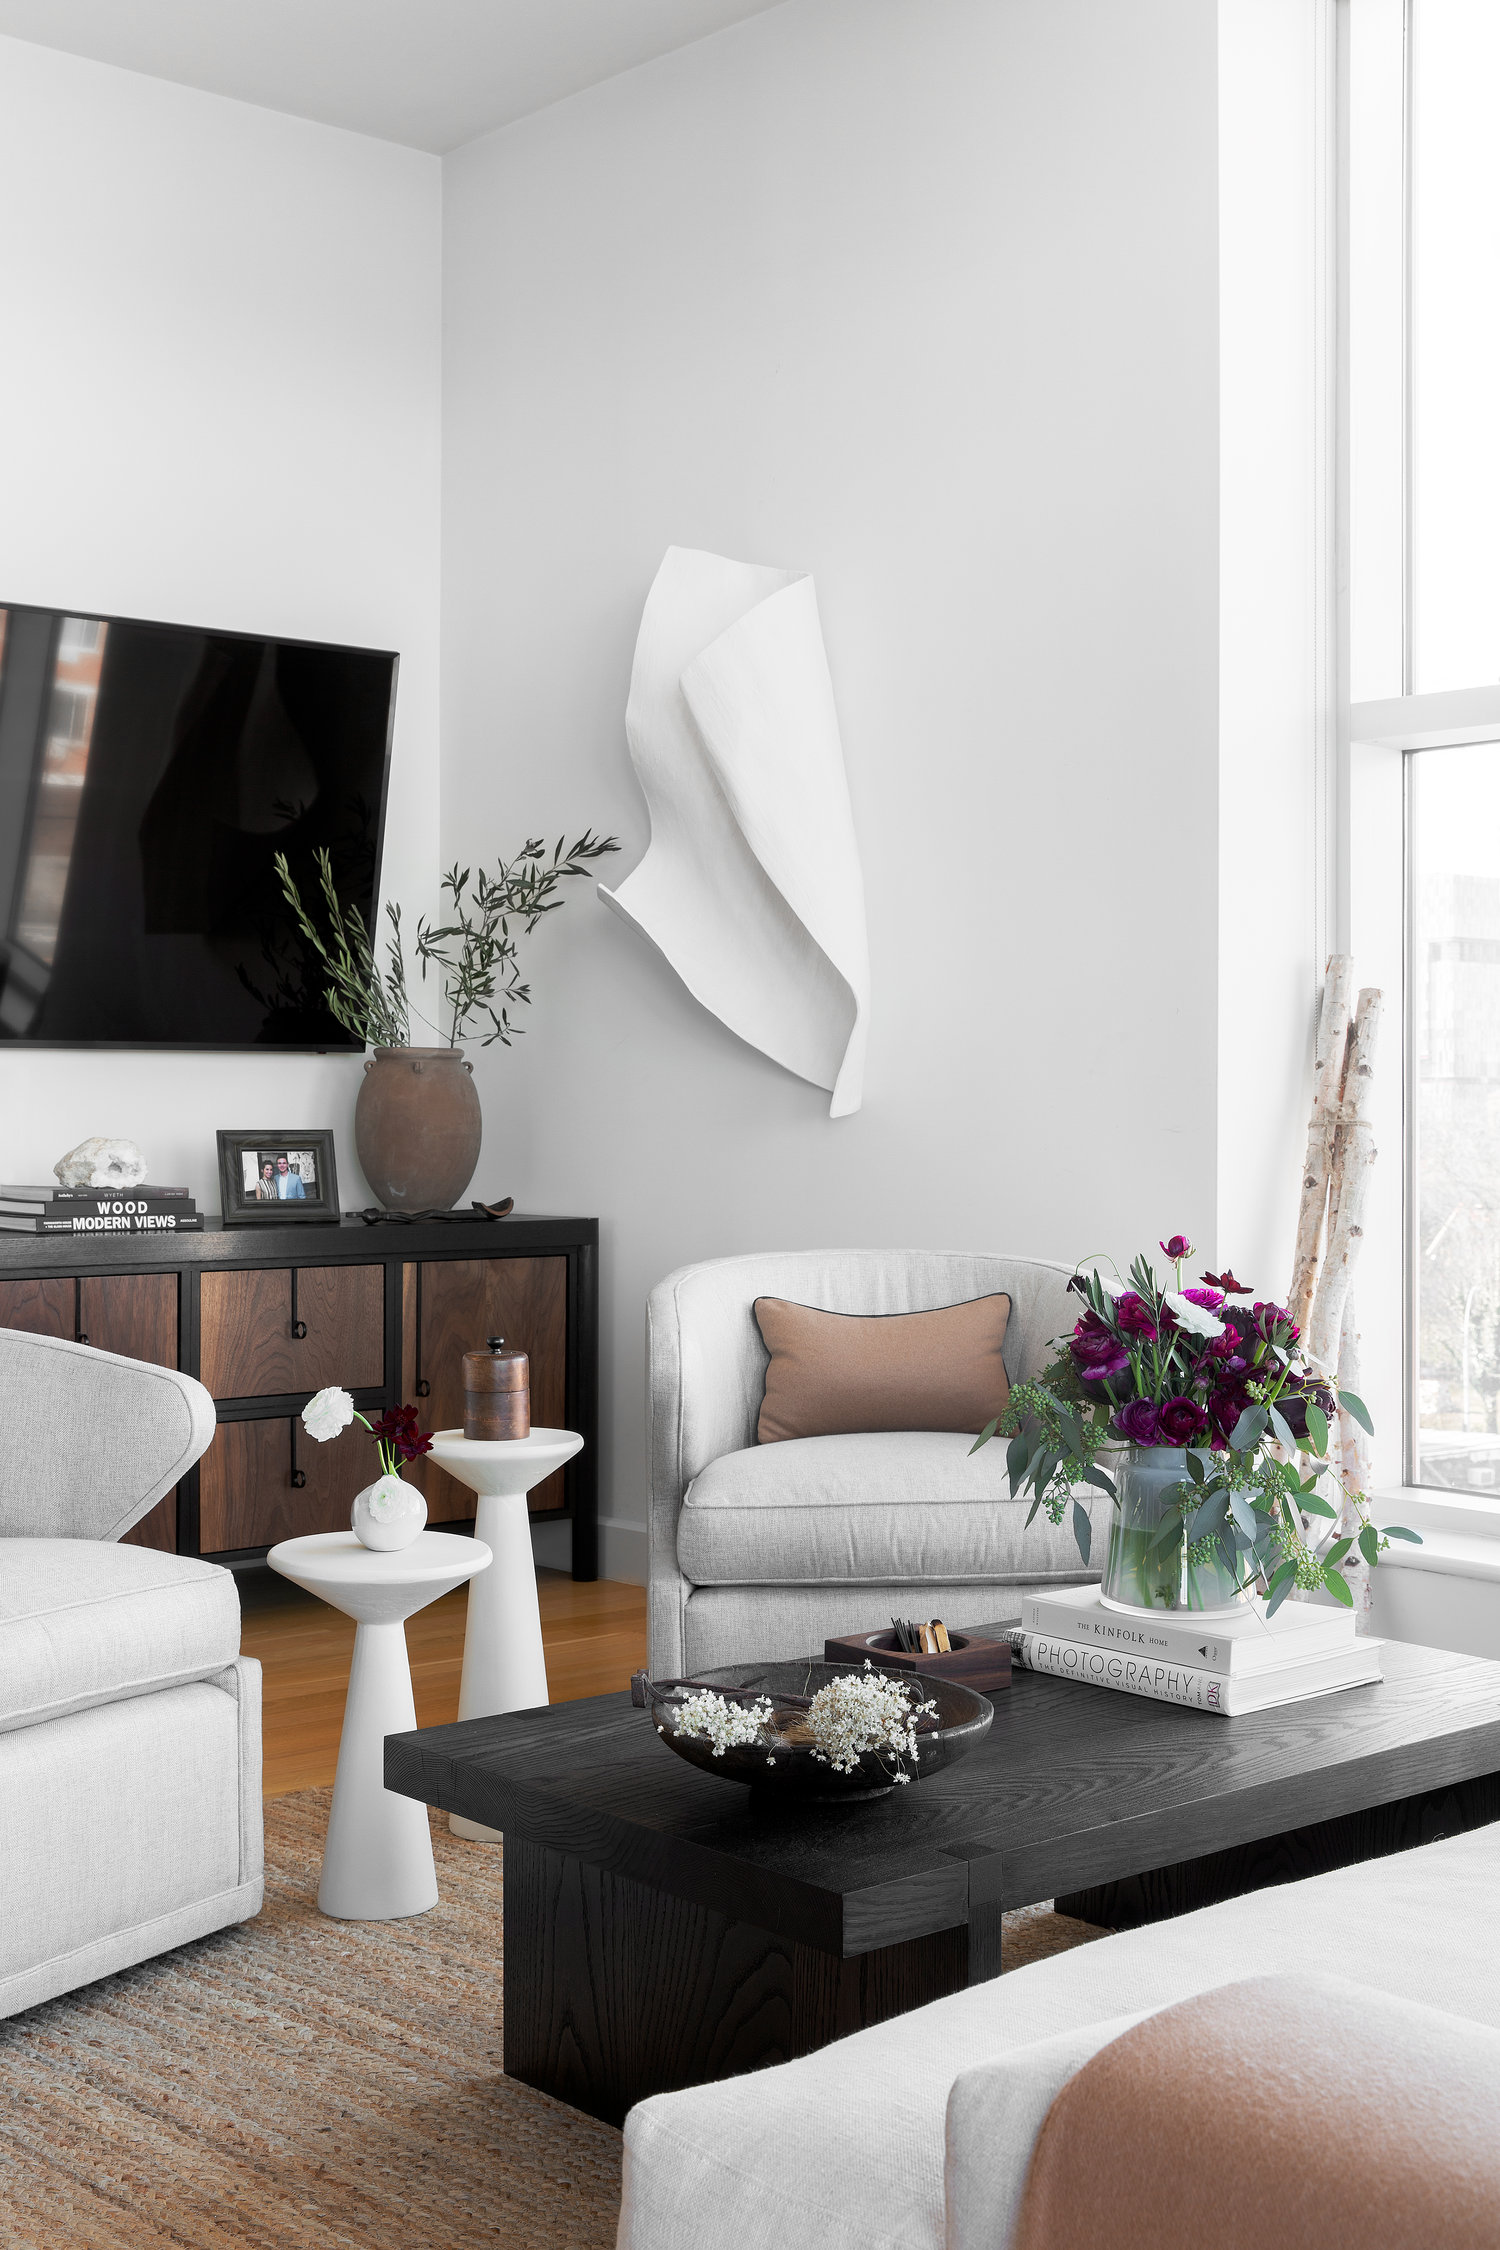 Long Island City Flat   Elle Decor Home Tour April 2019